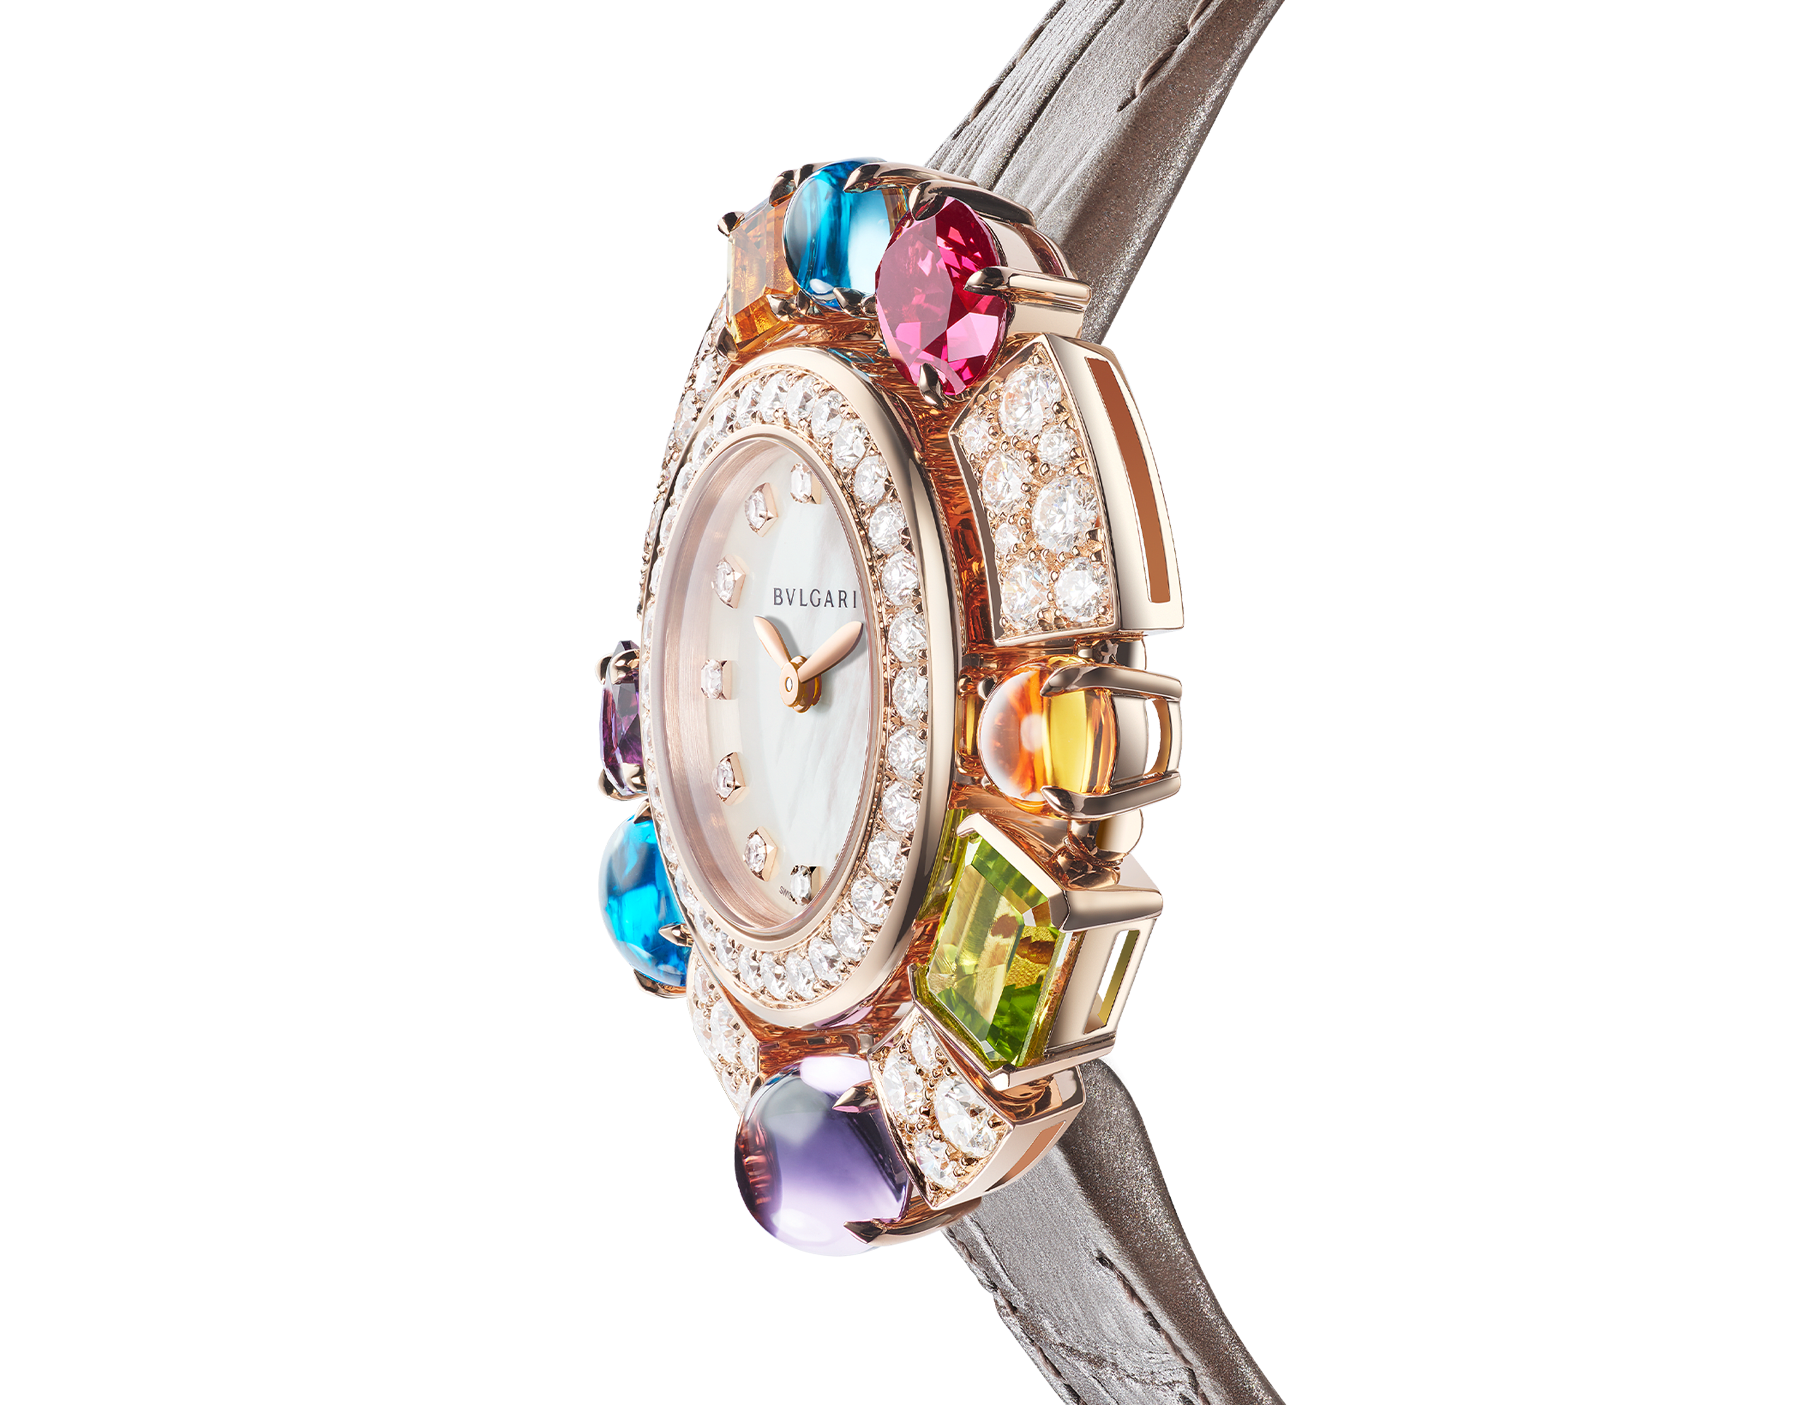 Allegra High Jewelry watch with 18 kt rose gold case set with brilliant-cut diamonds, two citrines, two amethysts, a peridot, two blue topazes and a rhodolite, mother-of-pearl dial, diamond indexes and shiny taupe alligator bracelet. Water-resistant up to 30 meters. 103493 image 3